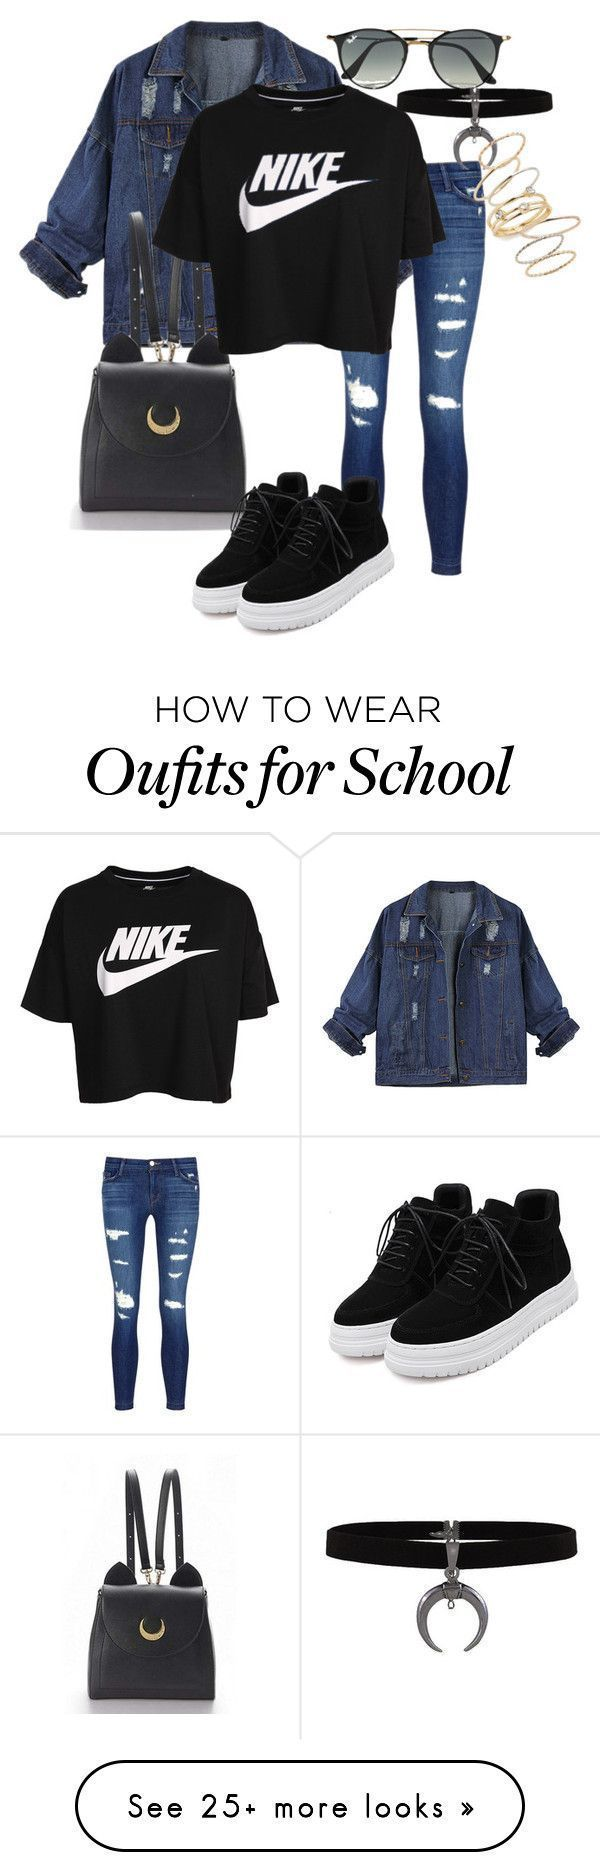 "Hairstyles for Back to School: ""1st Cool for School"" by srybuttnotsry on Polyvore a"